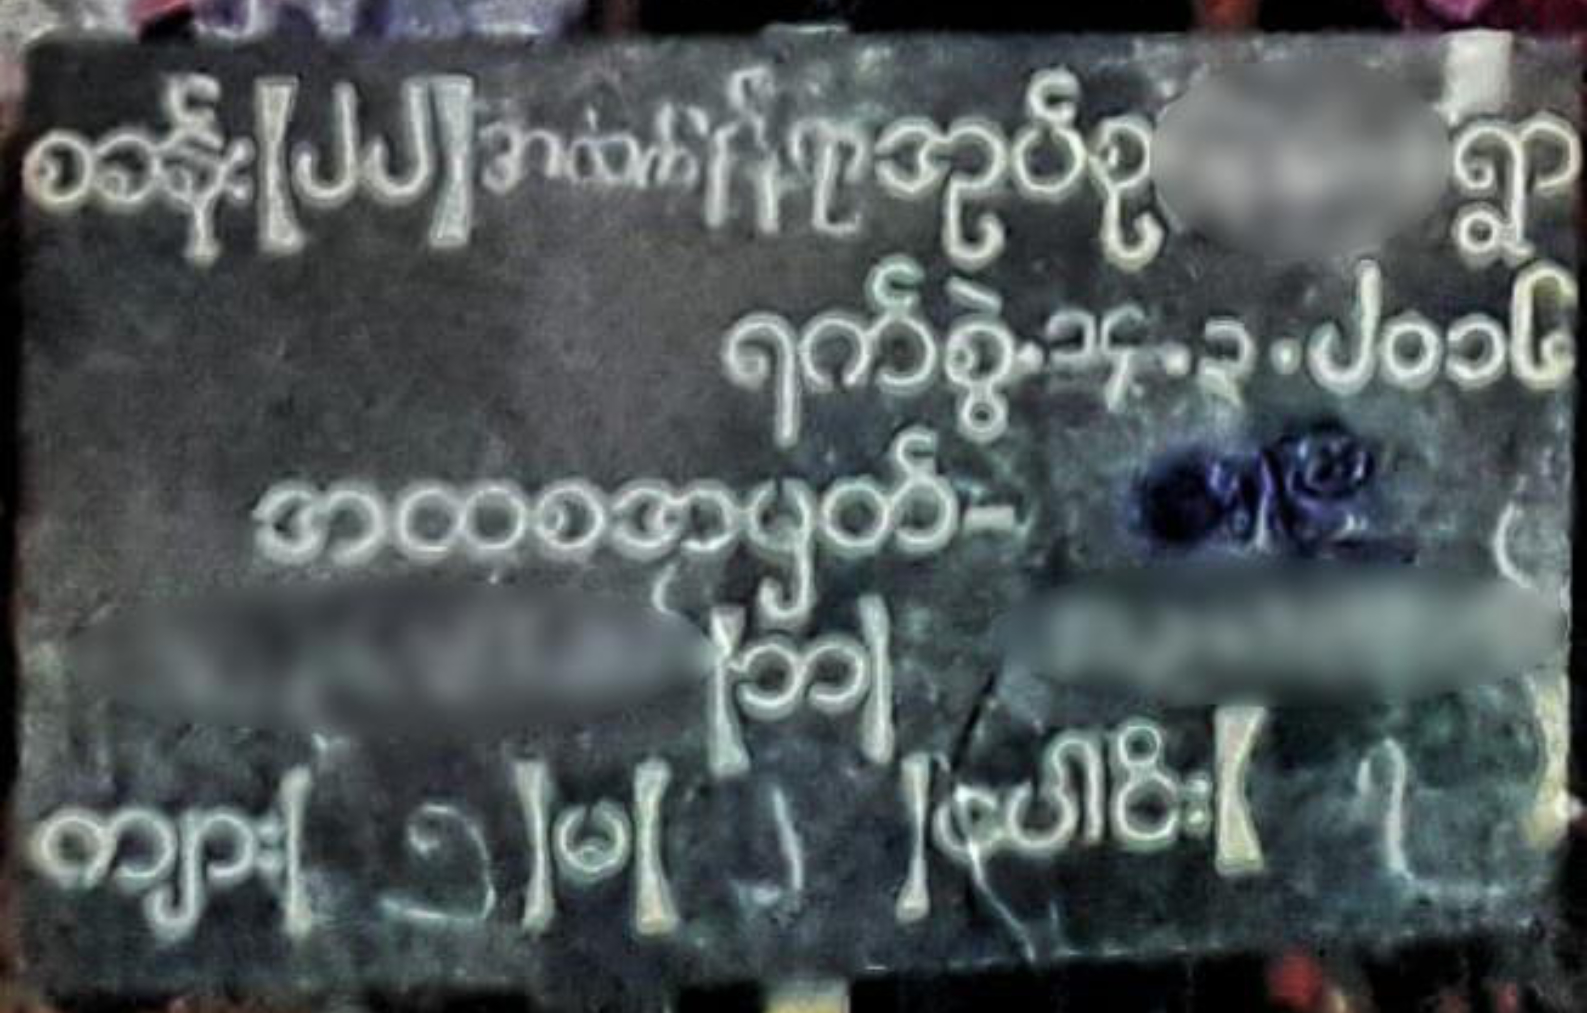 Photo 7 - Placard reads: Camp (22), Pryin Toung (Rathedaung) / Date 14.3.2016 / ATS No. 96 / (Name withheld) (F) (Name withheld)/ M(5) F (2) Total (7).